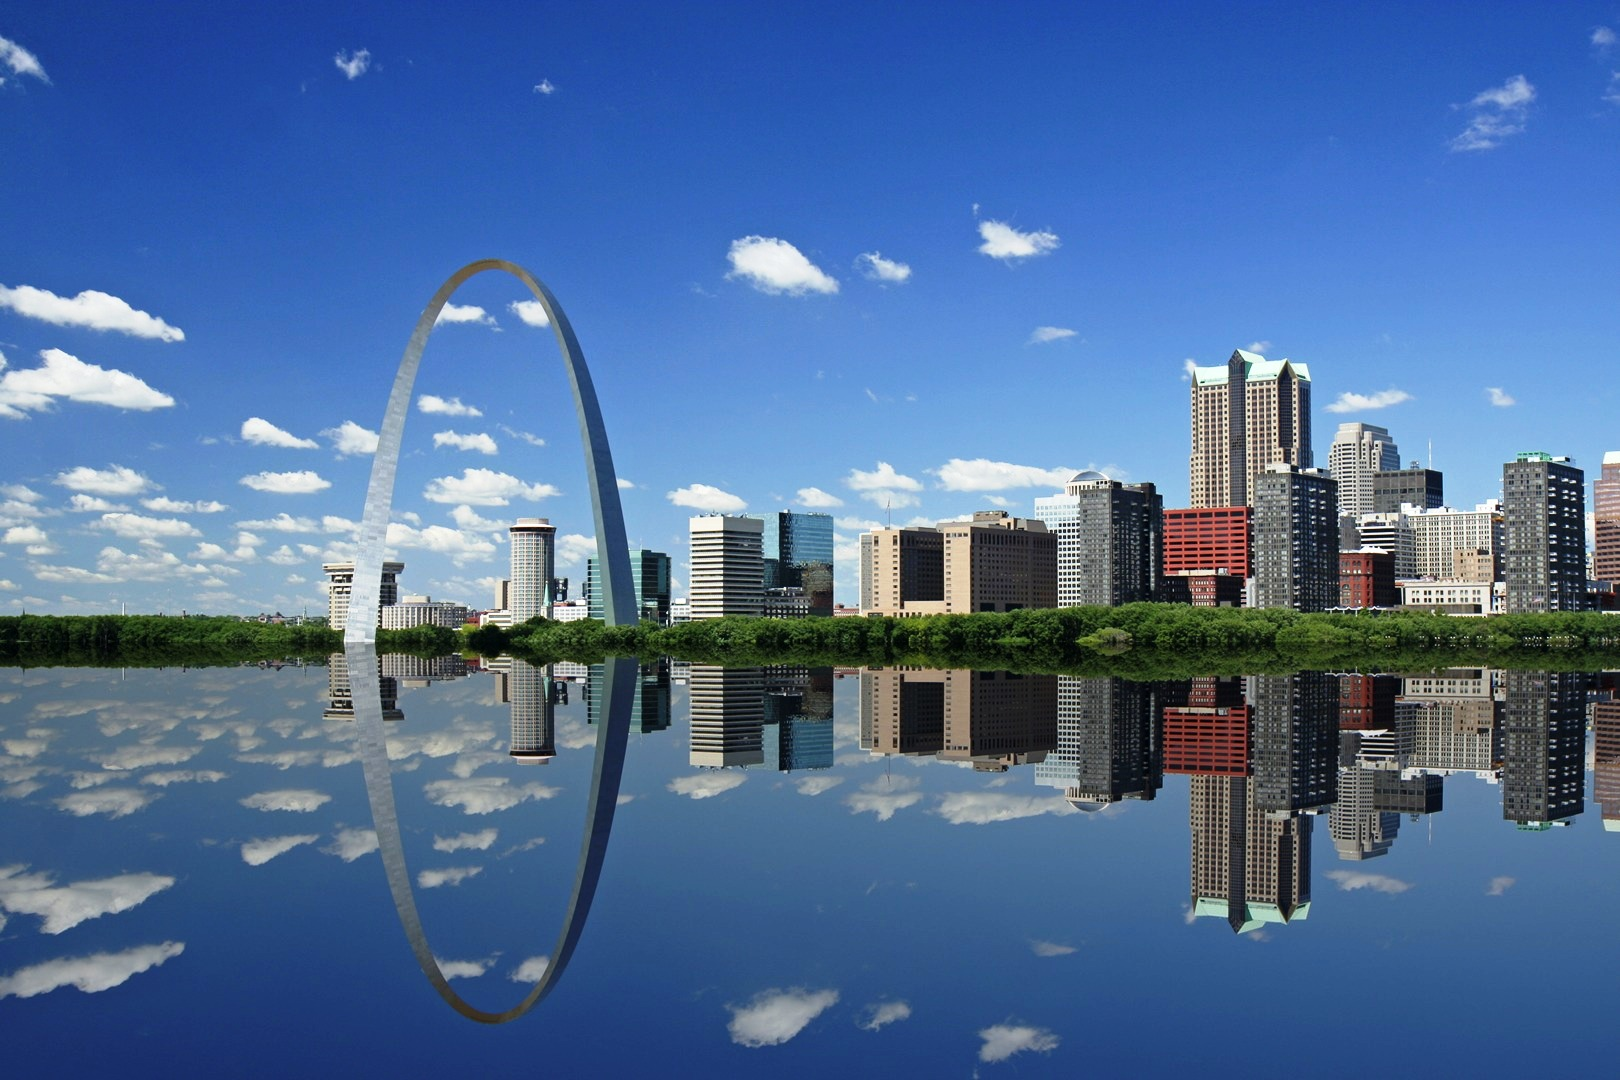 stlouis-riverfront-from-e-stl-at-high-water-flood.jpg